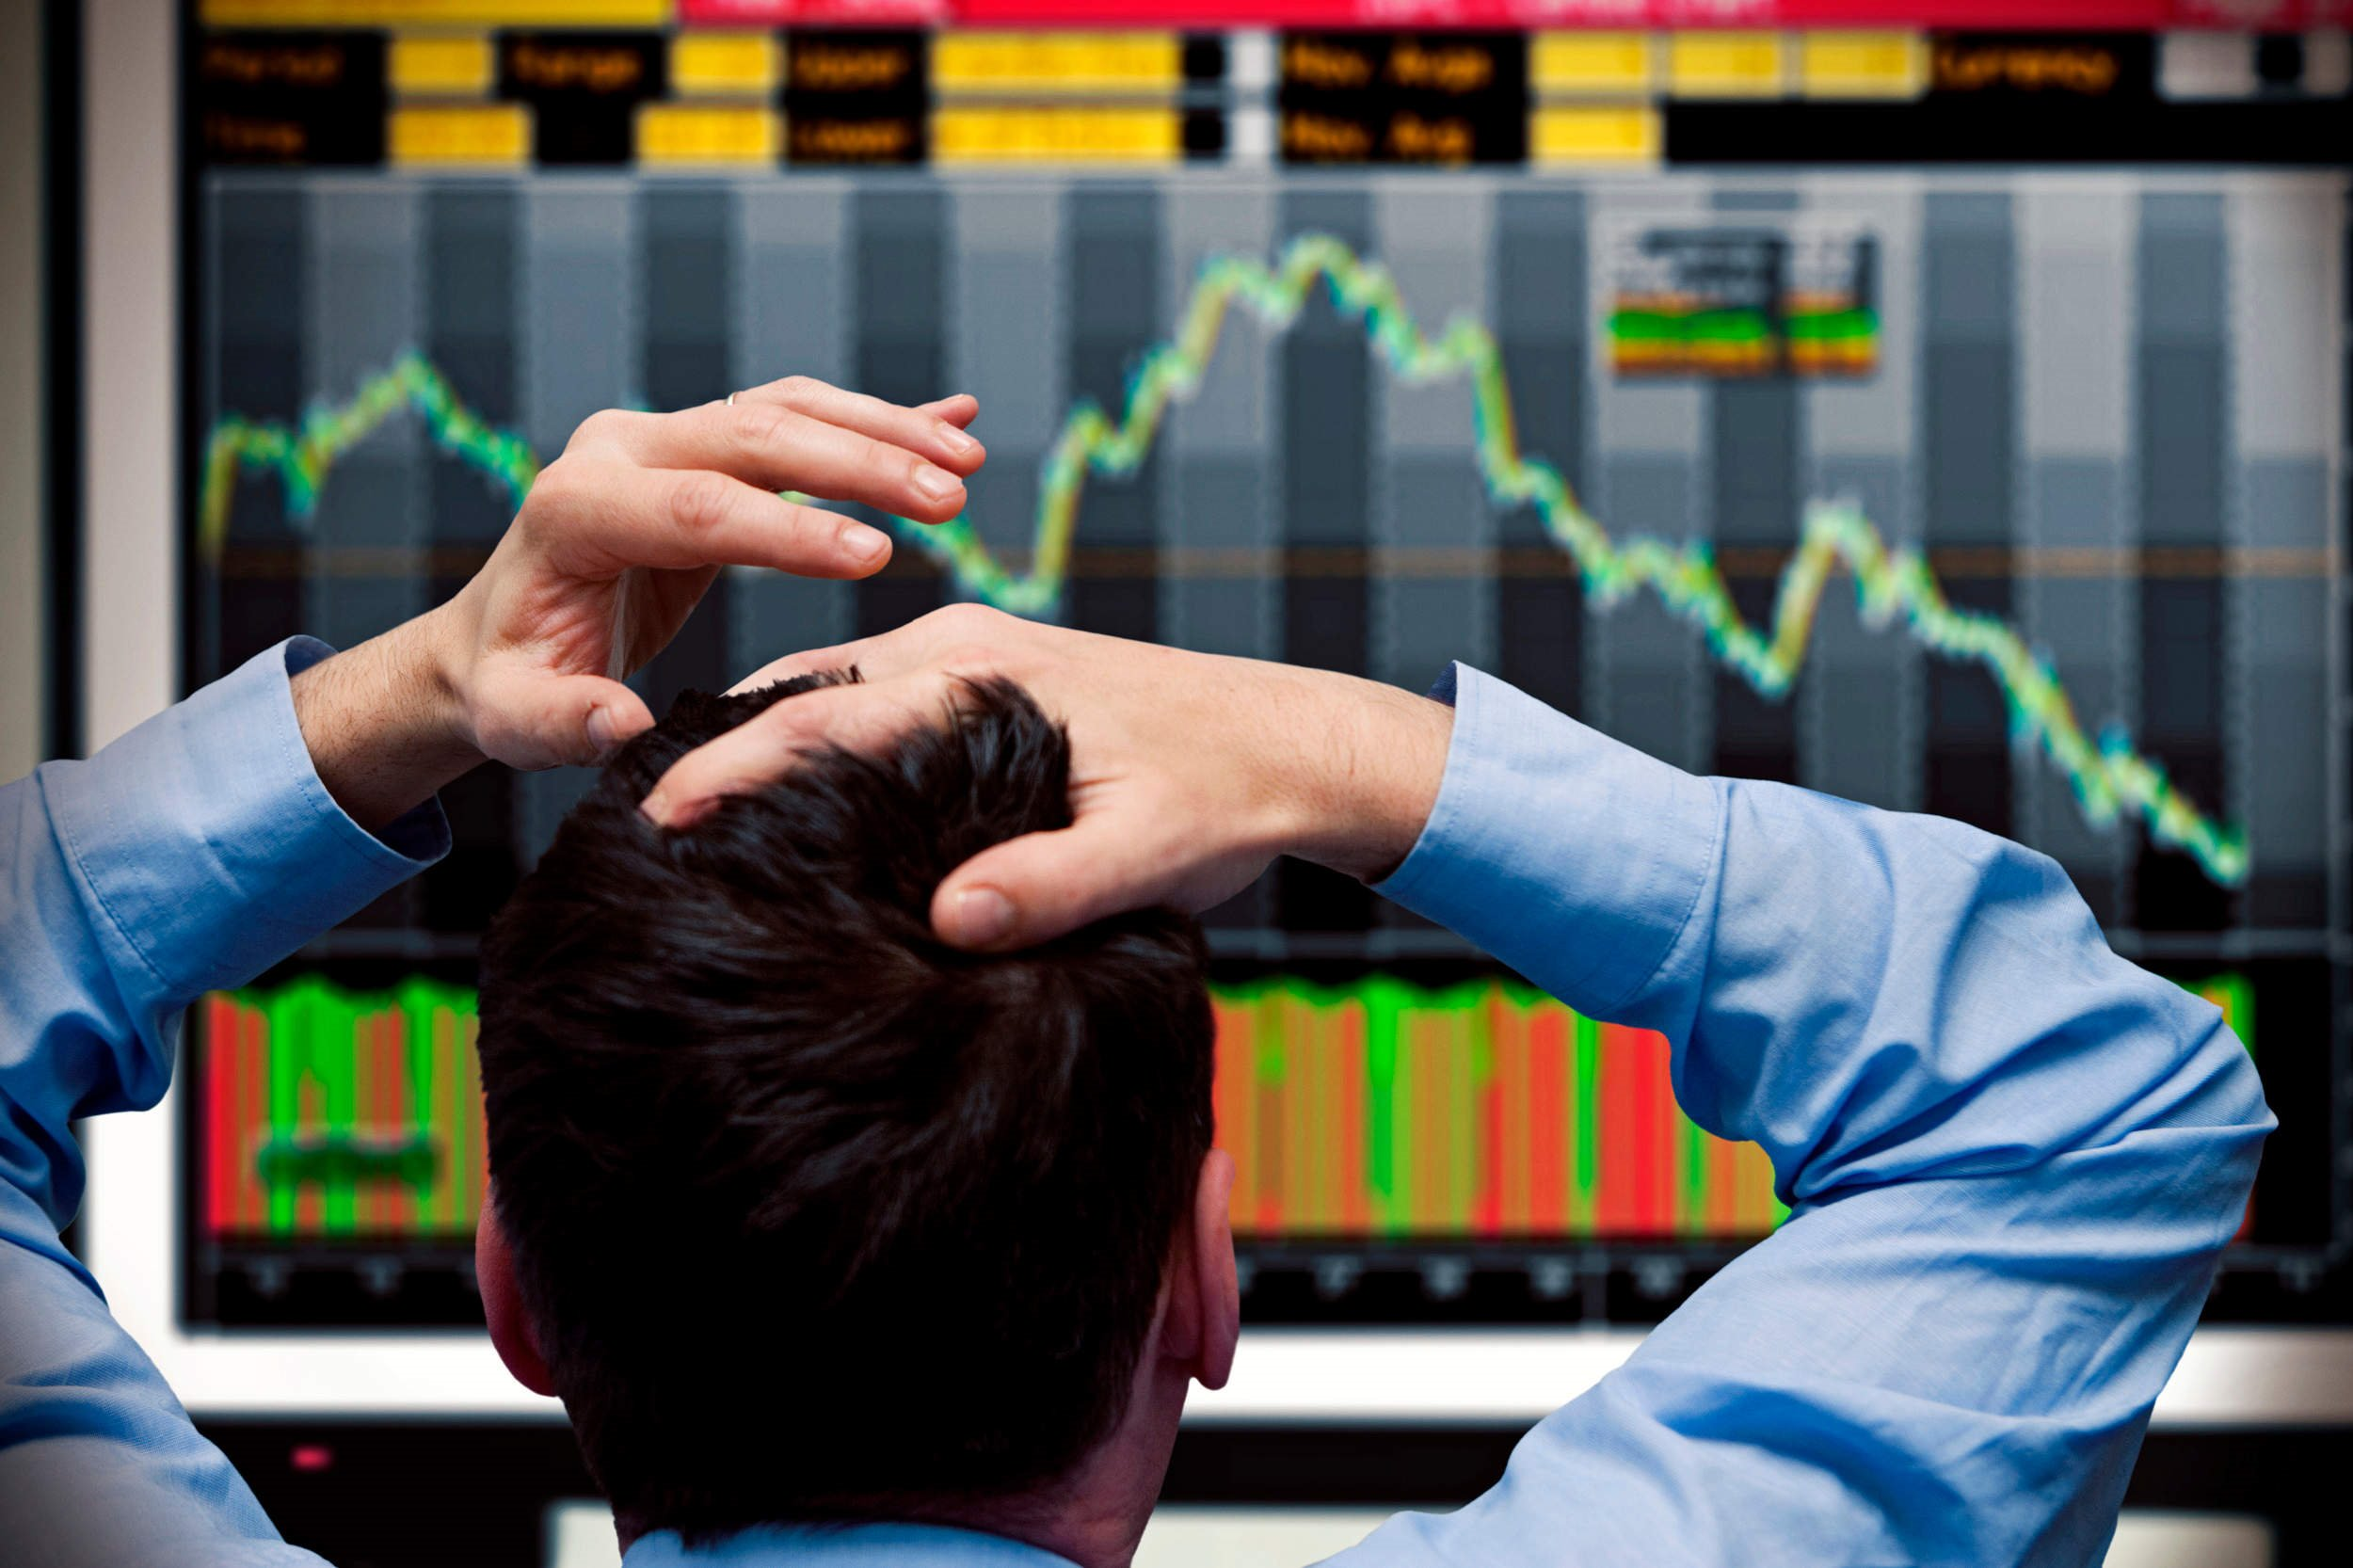 4 tips for safely investing right now when everything is so hectic